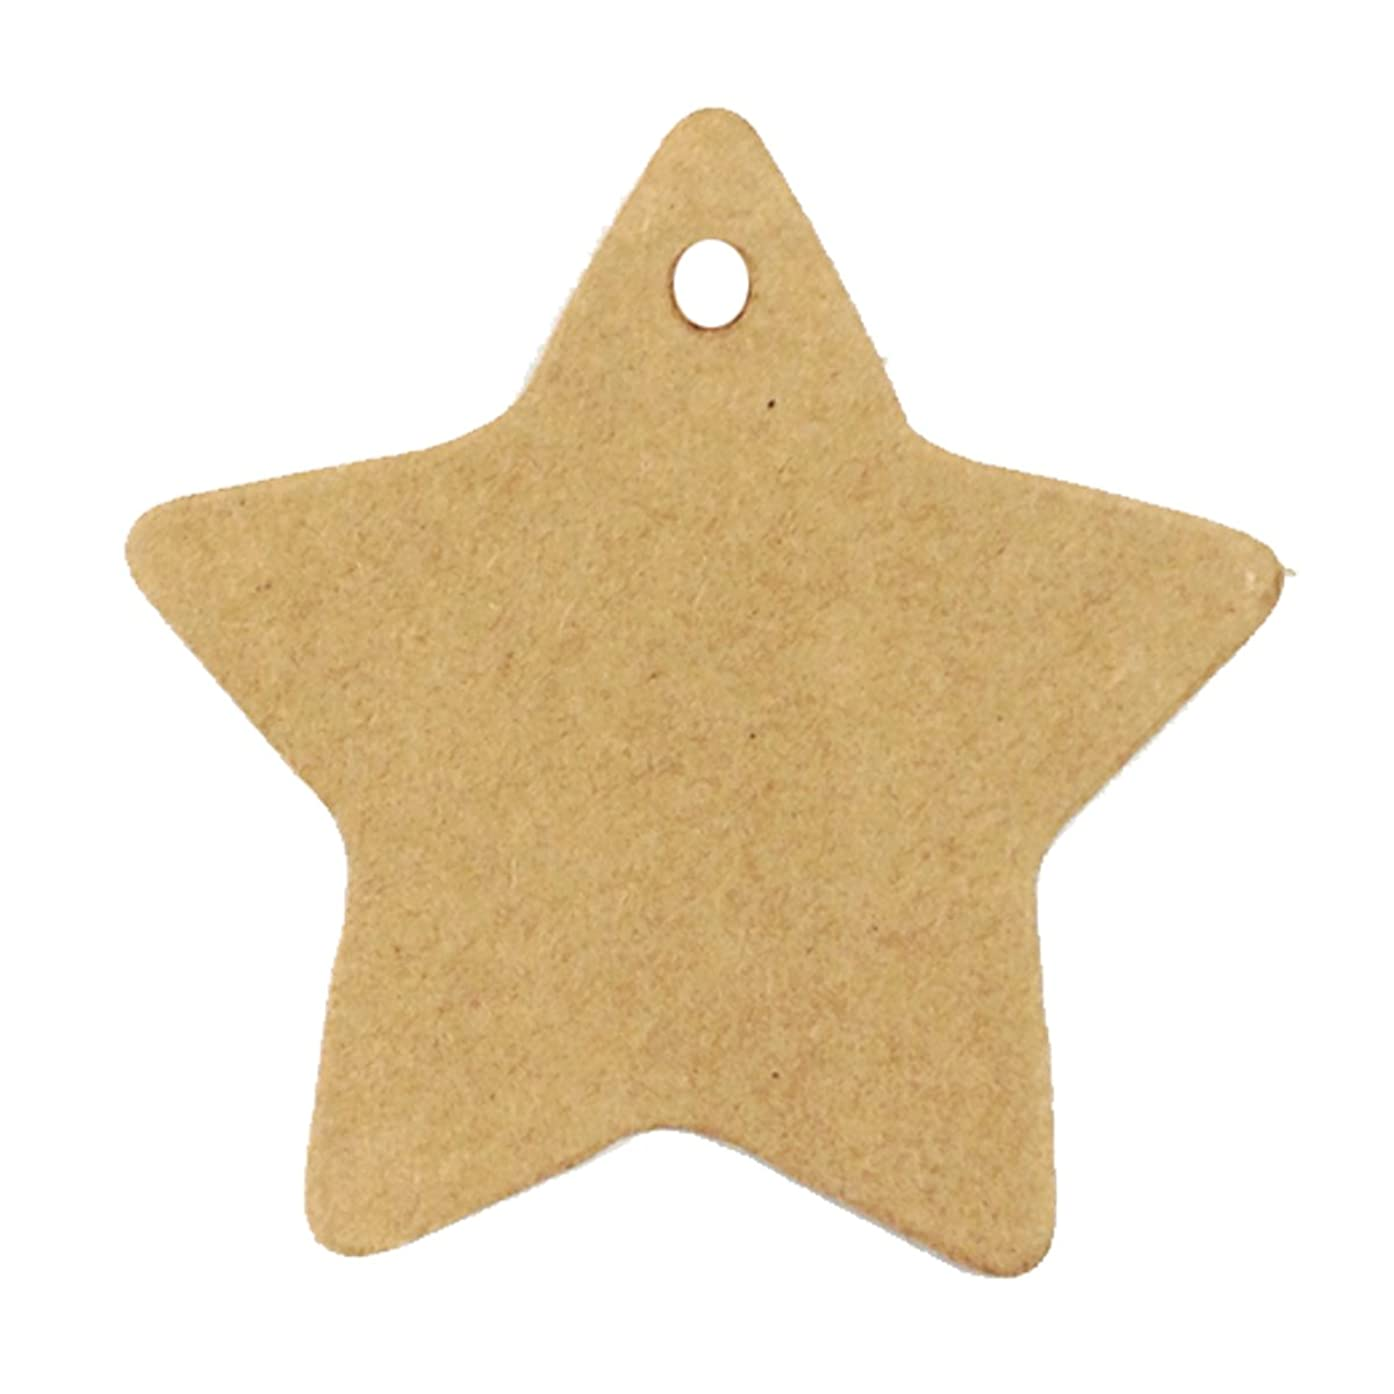 Wrapables 50 Gift Tags/Kraft Hang Tags with Free Cut Strings for Gifts, Crafts & Price Tags - Star